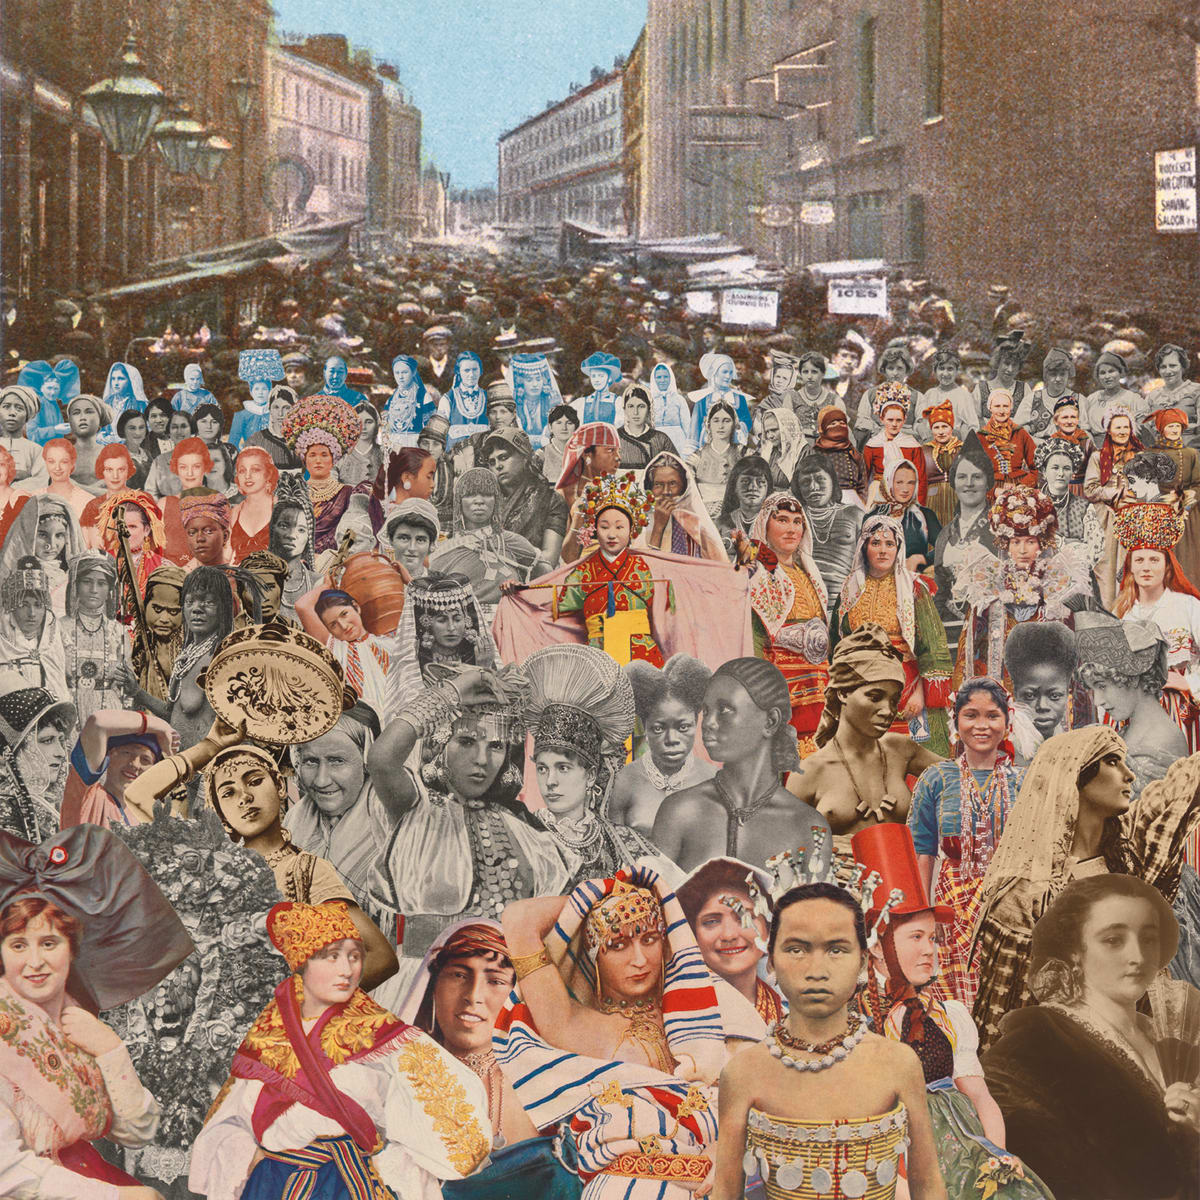 Peter Blake London- Petticoat Lane- One Hundred Women, 2012 Silkscreen print on 410gsm Somerset Tub Sized Signed and numbered by artist. 66.6. x 65.2 cm Edition of 100